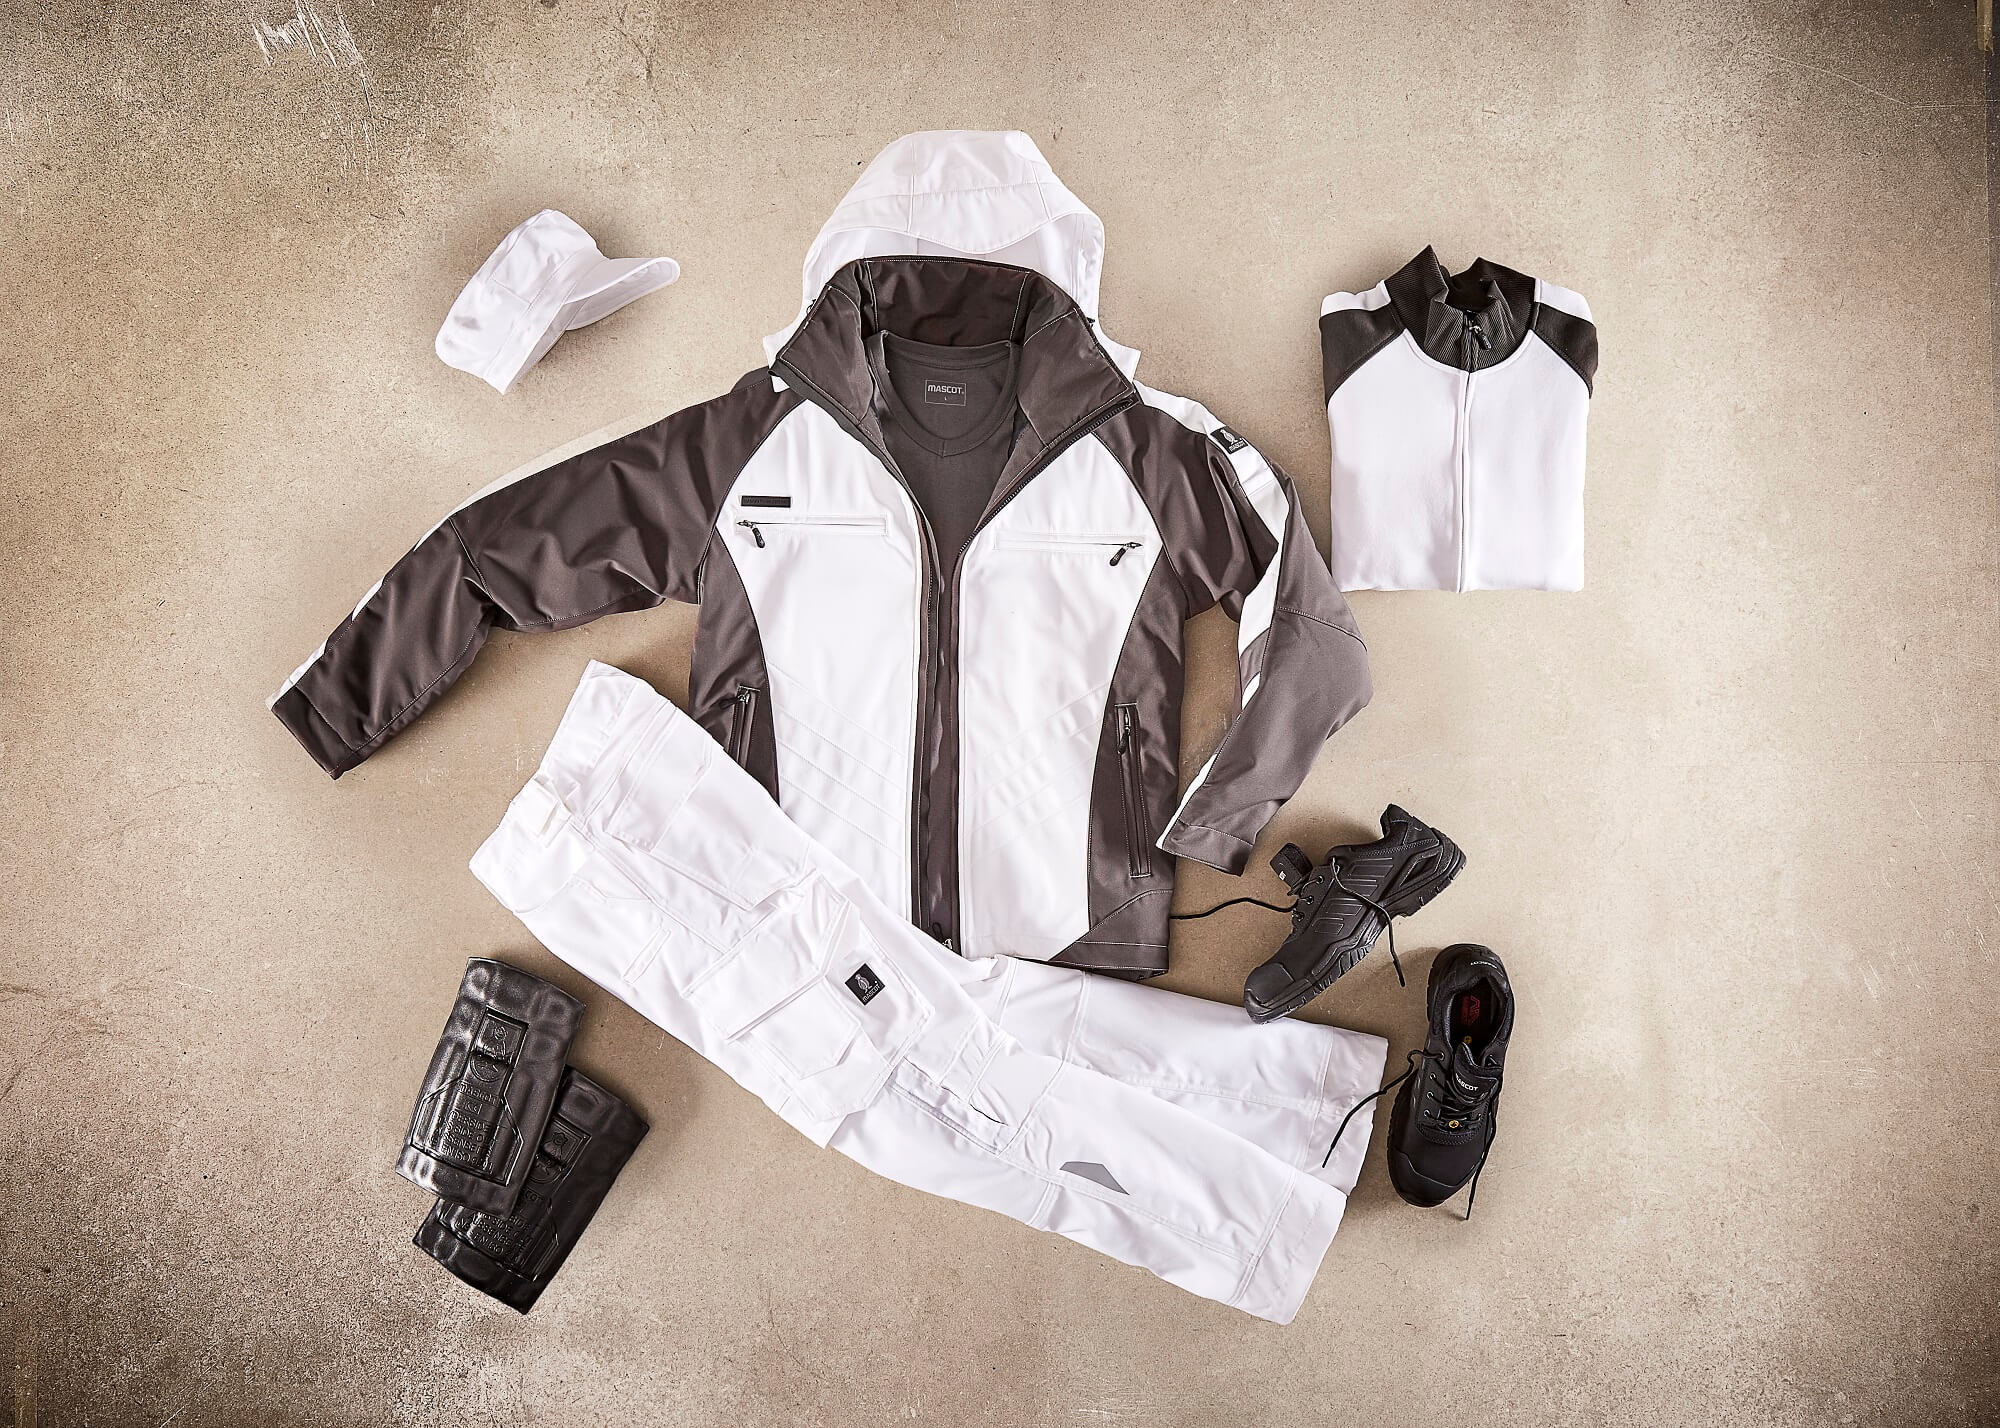 Collage - Veste grand froid, Pantalon, Sweat & Chaussures de sécurité basses - Blanc